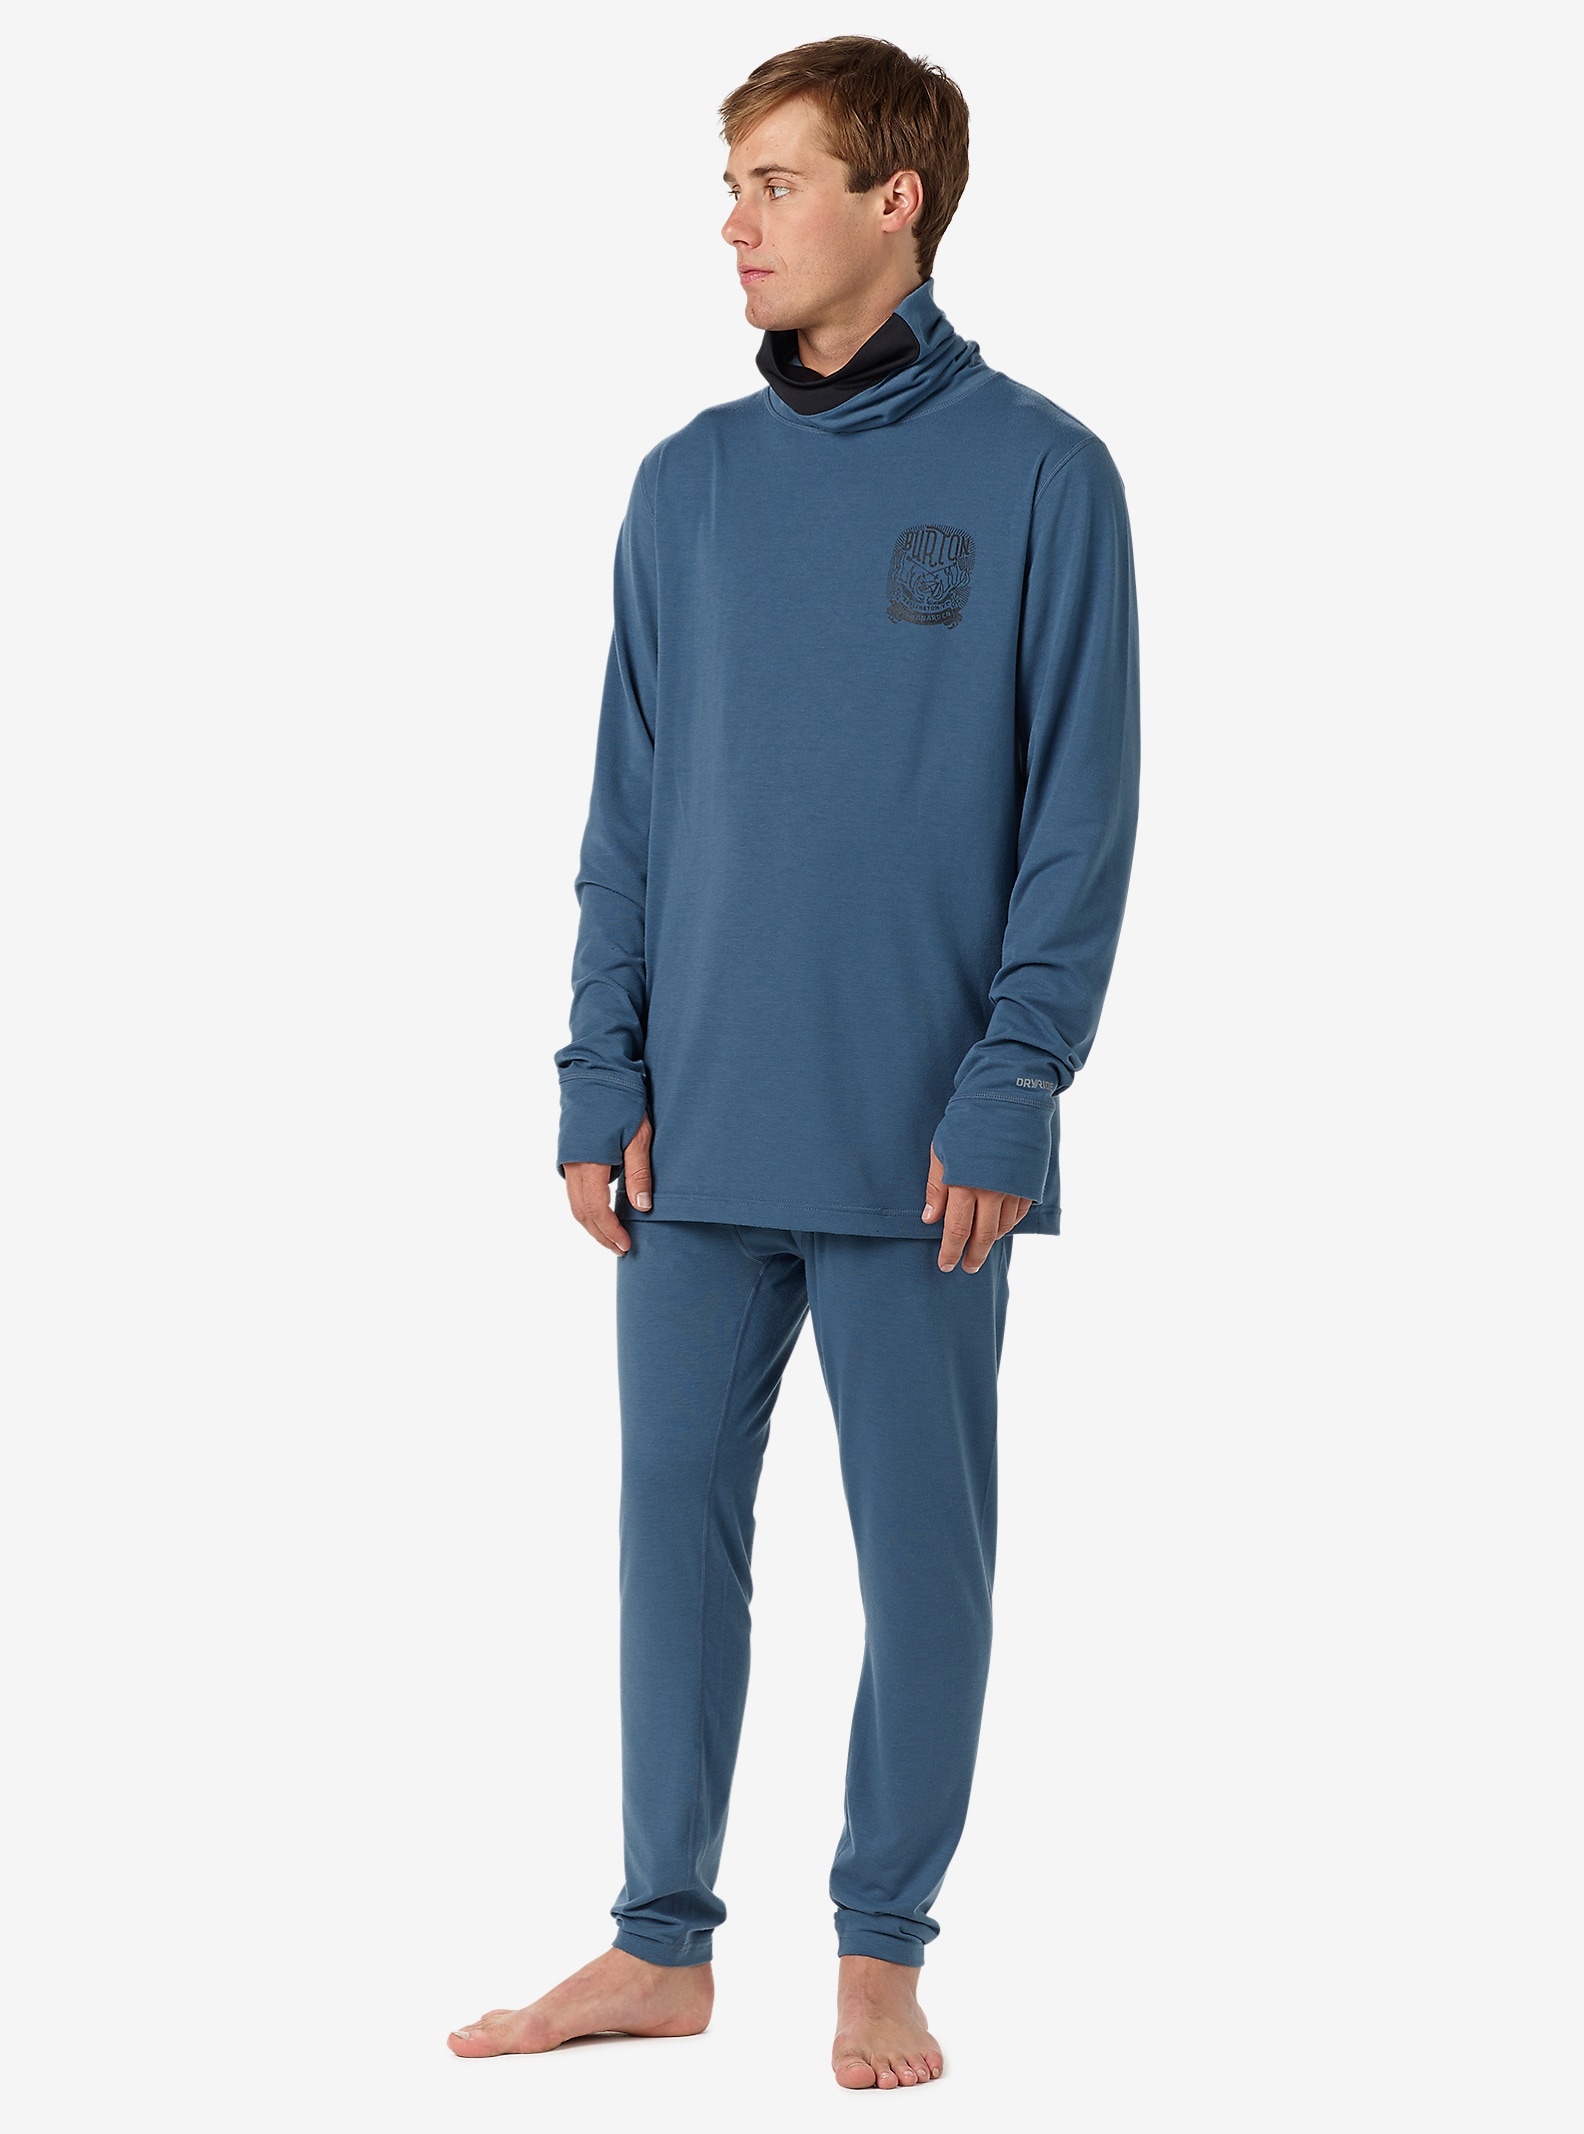 Burton Midweight Base Layer Pant shown in Washed Blue